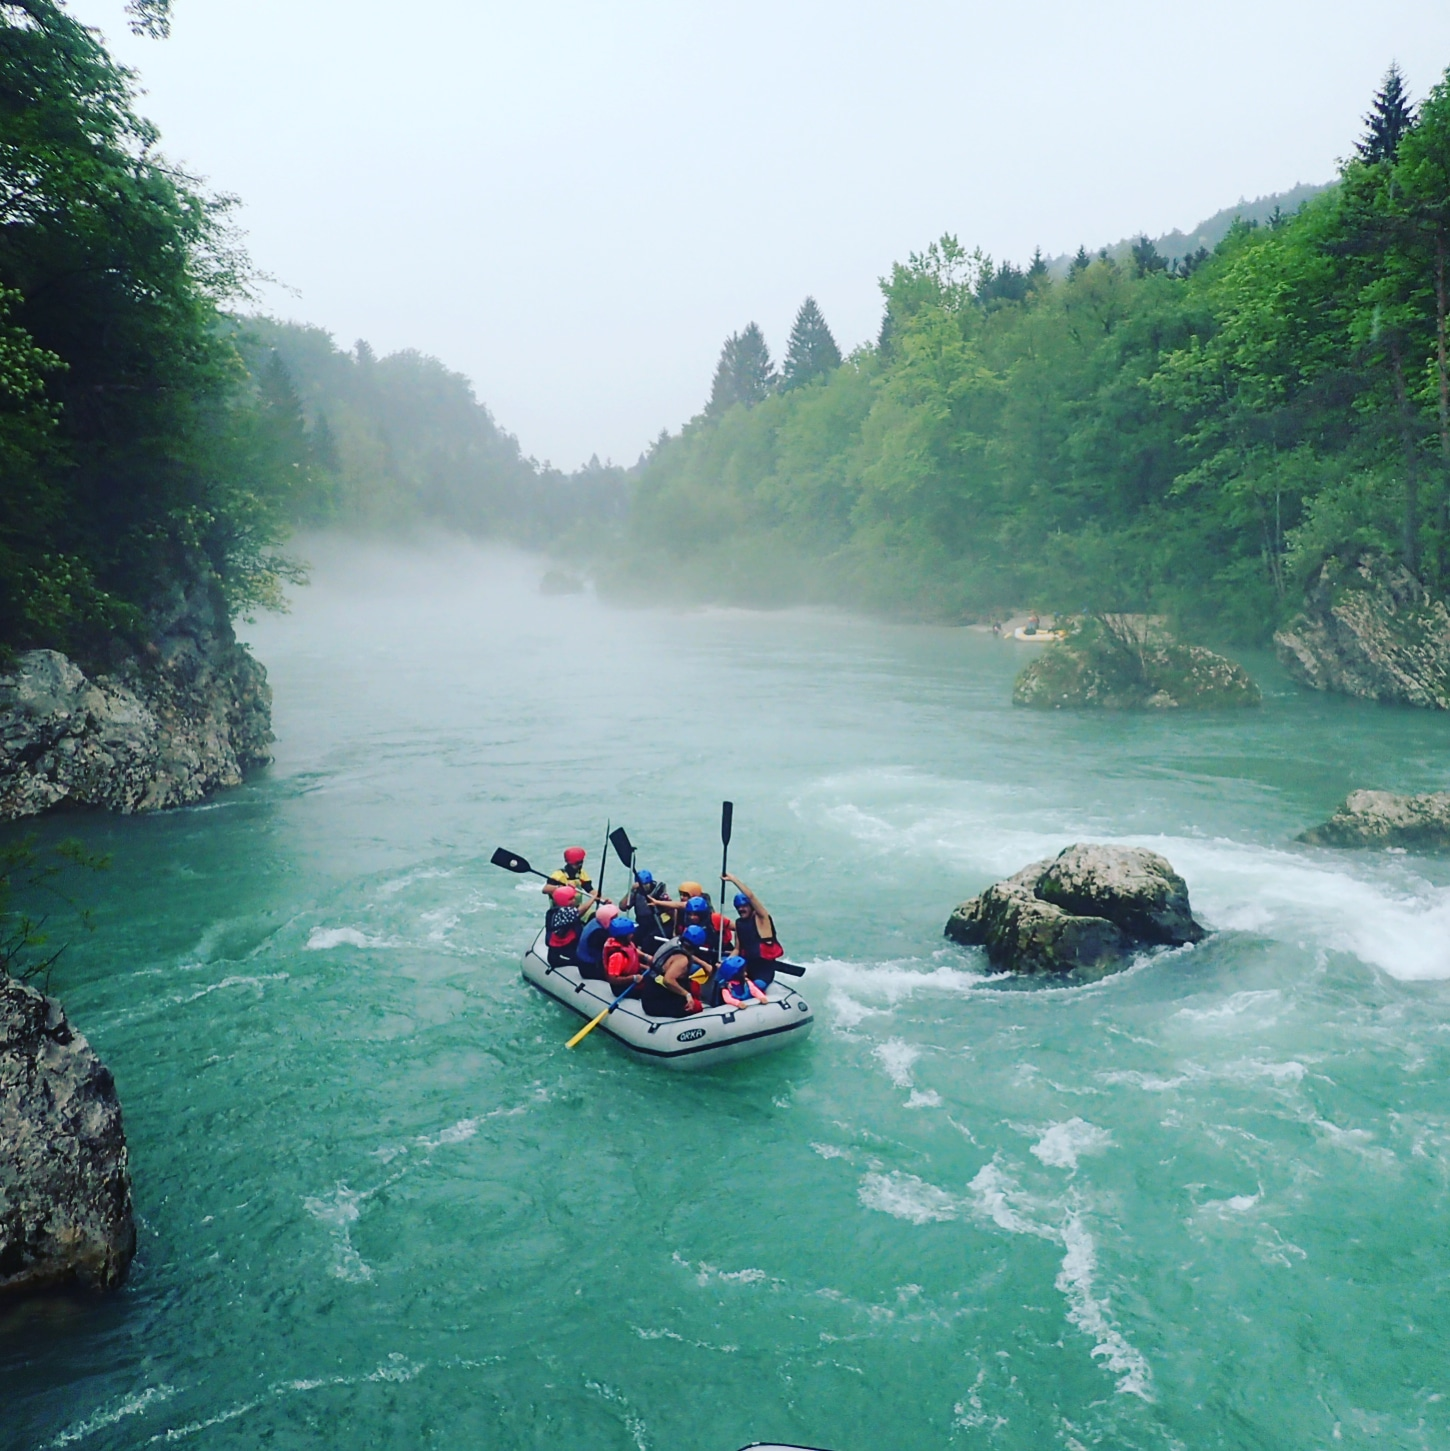 Bled Rafting on foggy river Sava